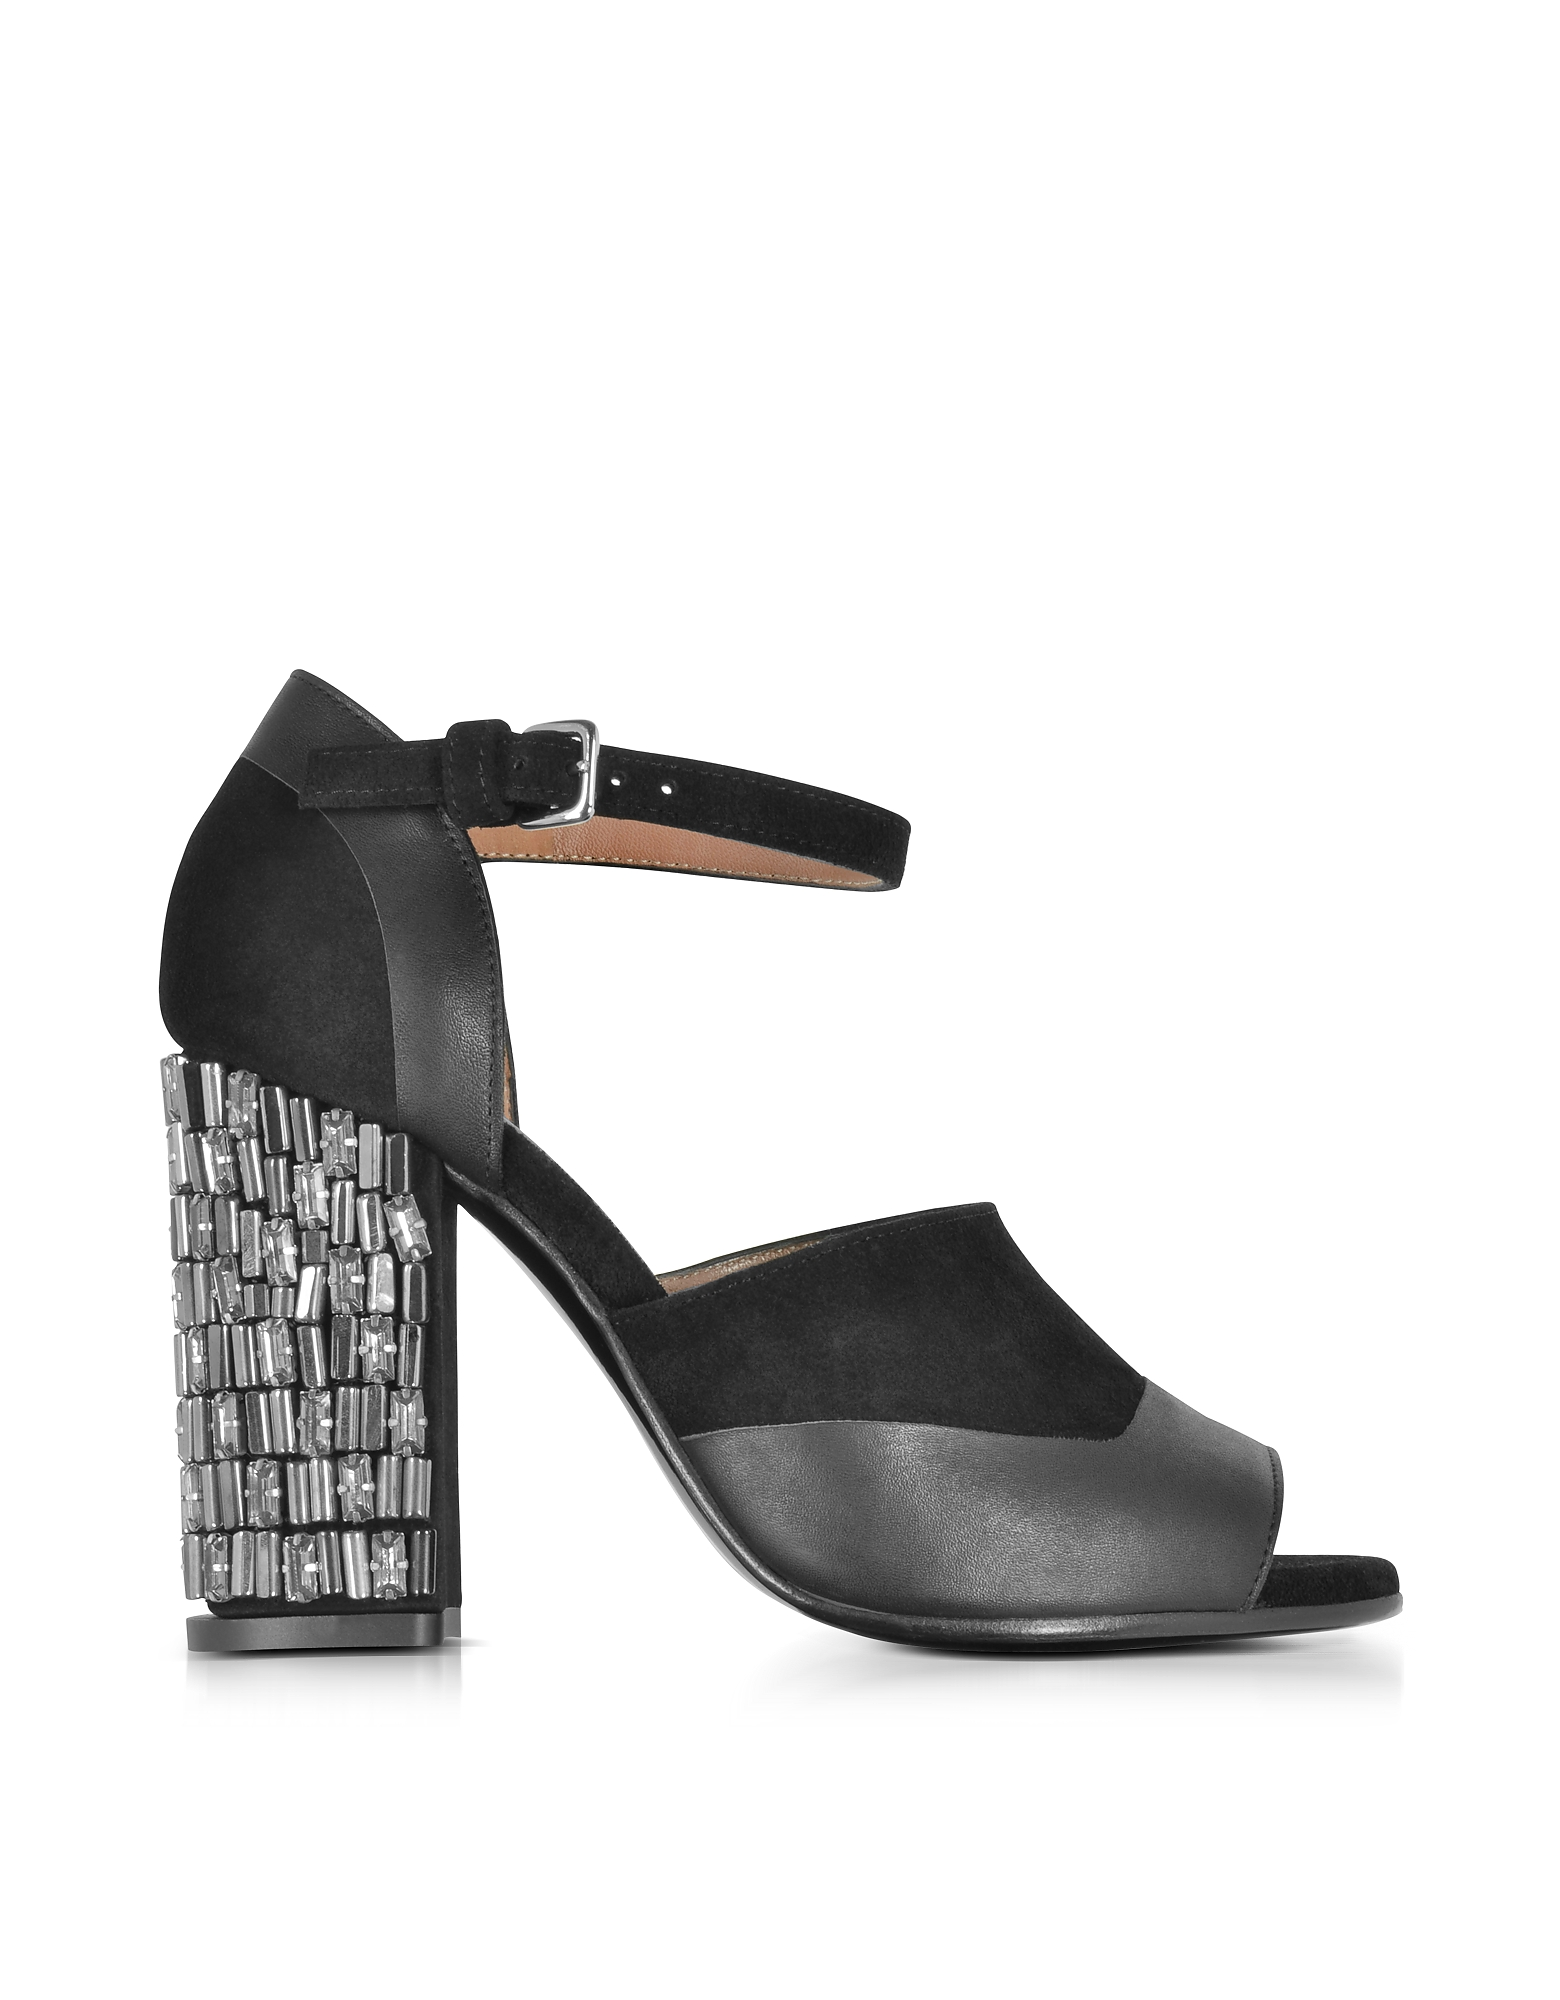 Marni Shoes, Black Velvet and Leather Heel Sandal w/Crystals